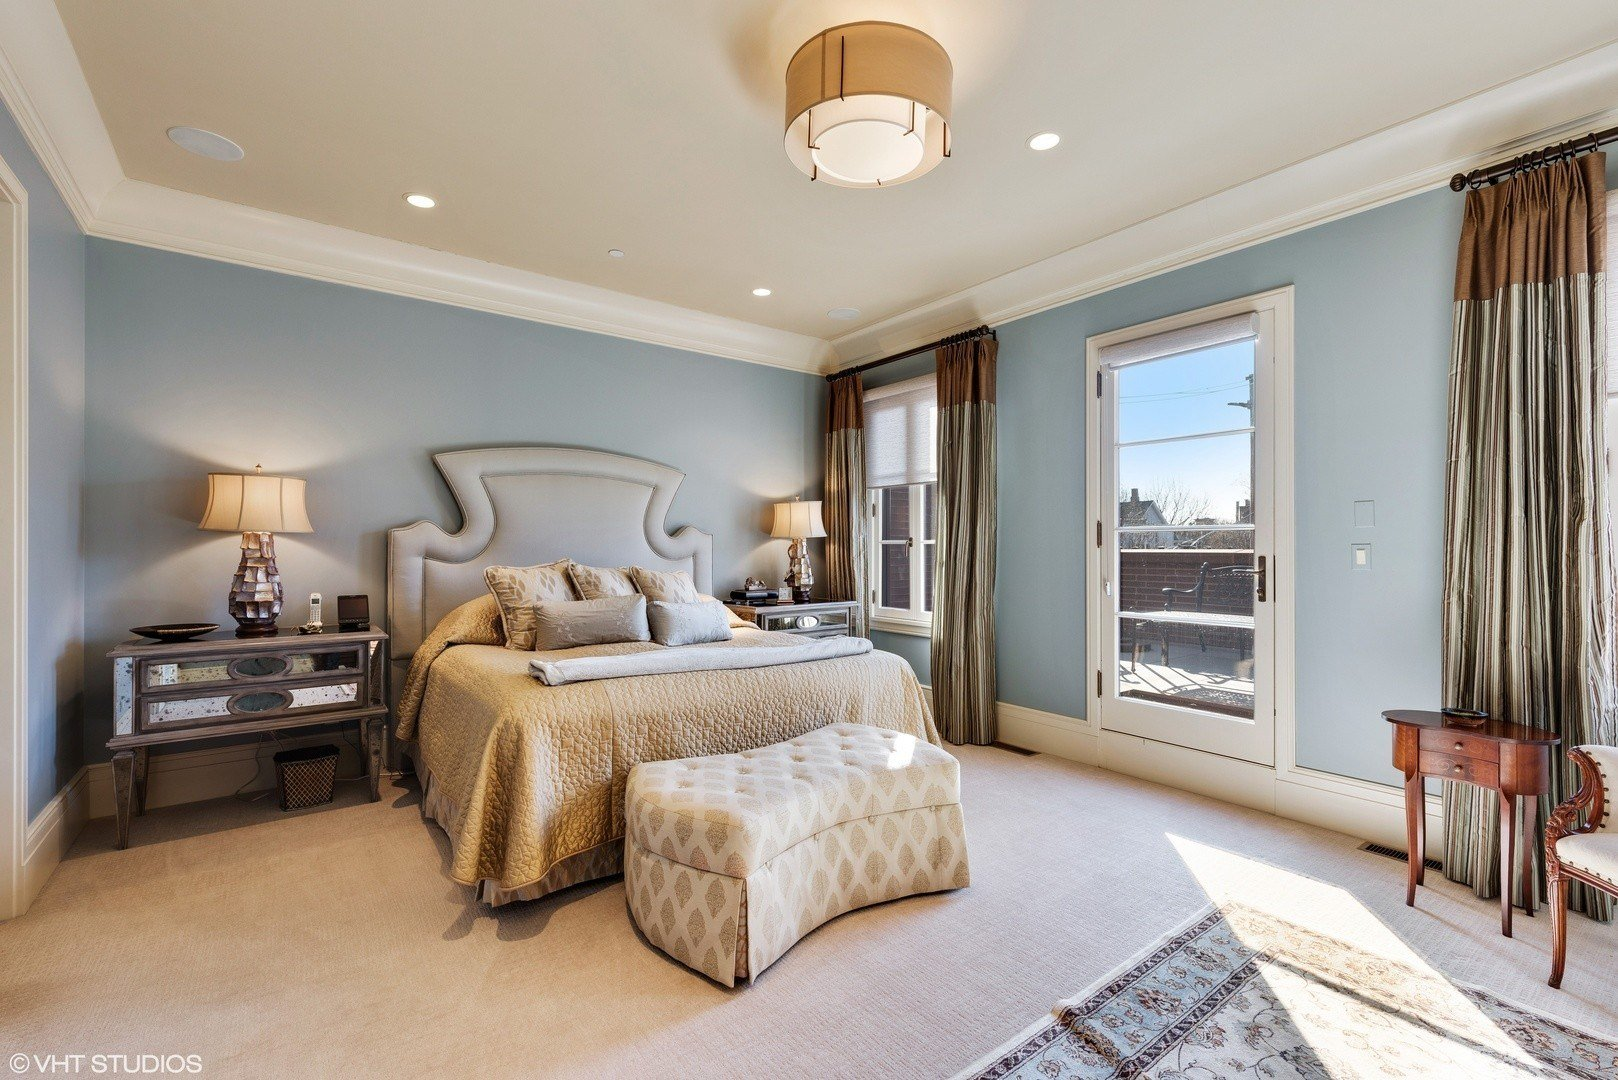 Best Luxury Basement Bedroom Requirements Illinois Furnitureinredsea Com With Pictures